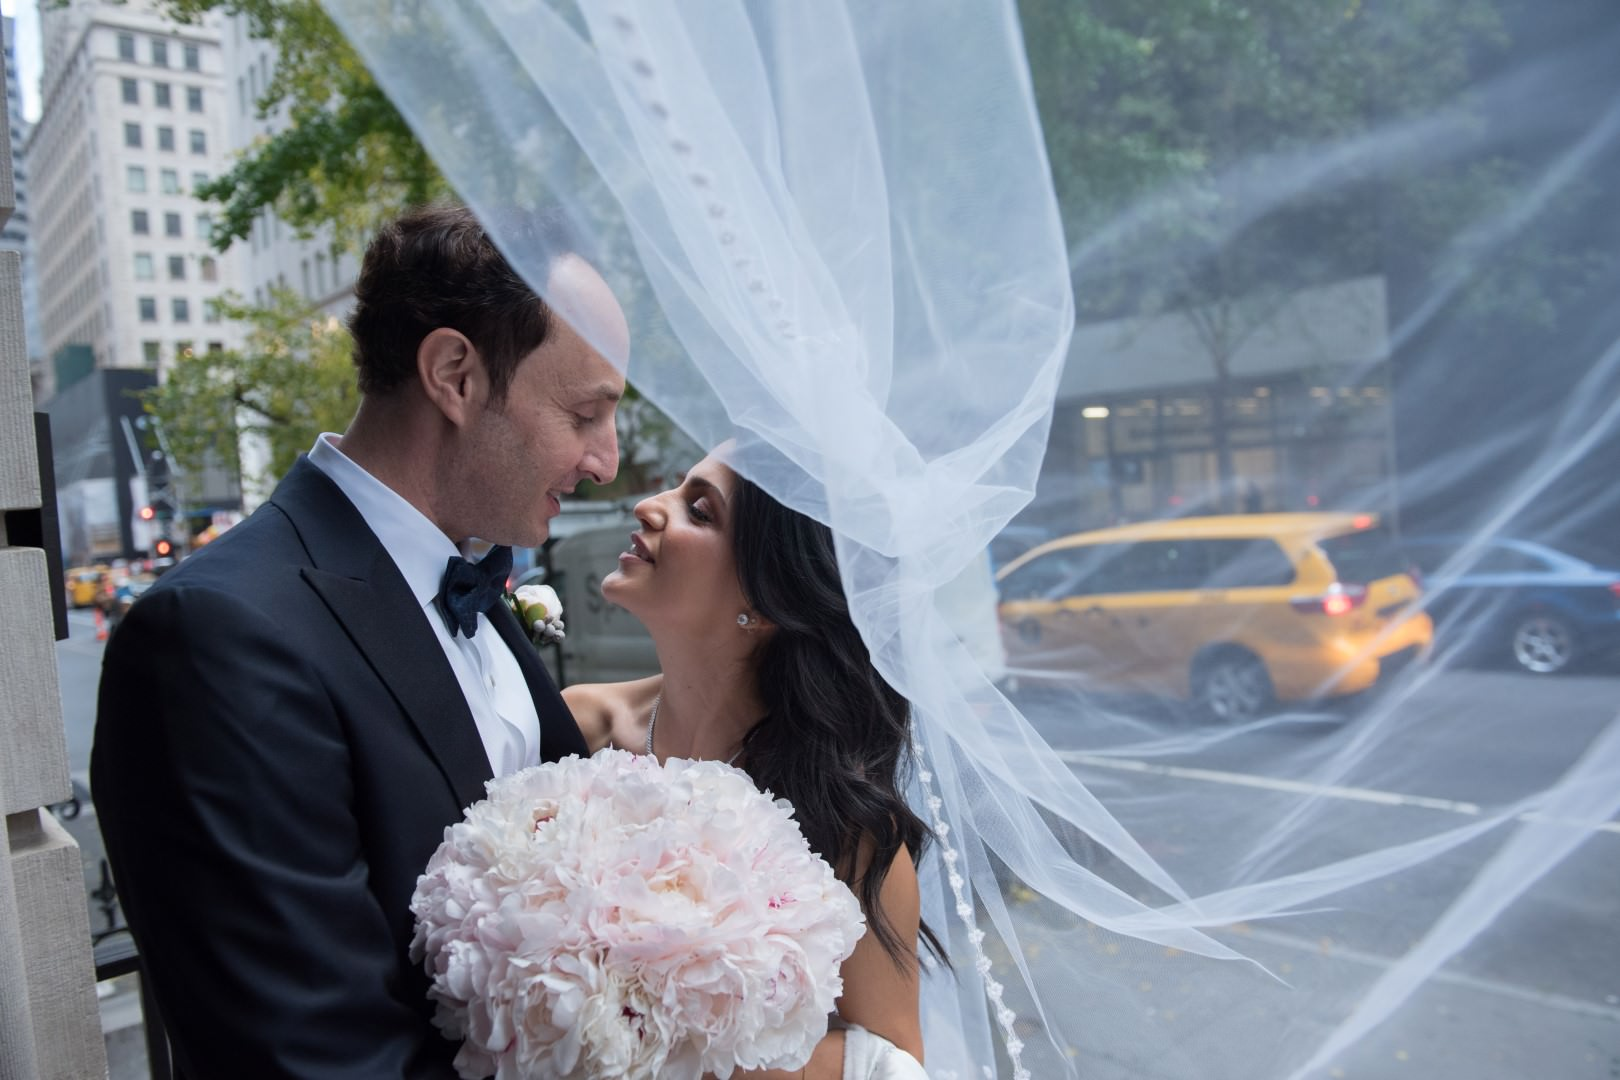 new york city artistic beautiful art wedding photography photographer photo groom bride emotional kiss walking street under veil wind